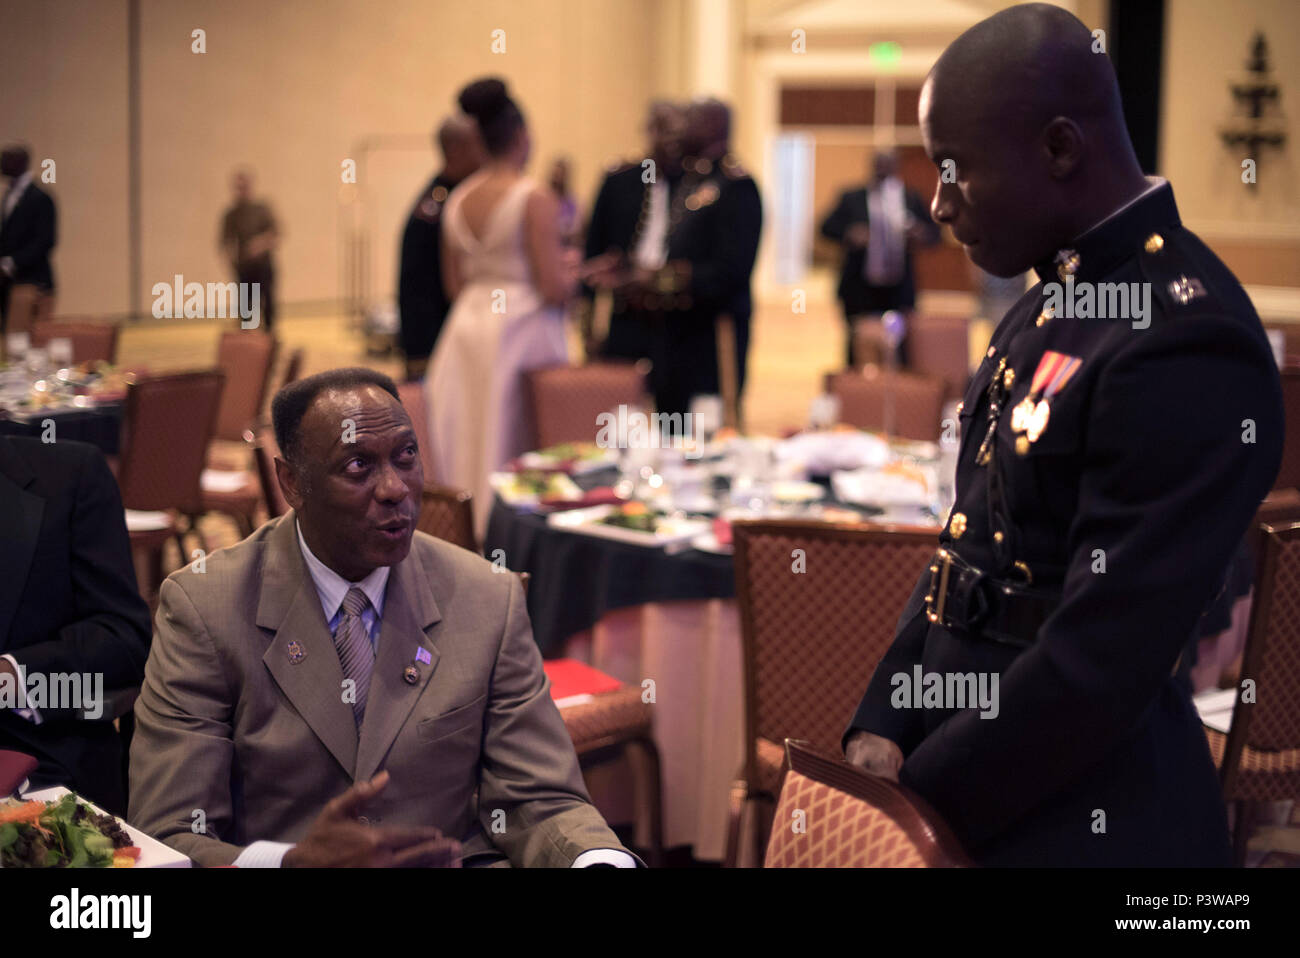 Capt. Nubari Kogbara participates in the Omega Psi Phi Fraternity's 80th Grand Conclave in Las Vegas July 23. This event gave the Marine Corps the opportunity to engage with qualified officer prospects and key influencers. - Stock Image